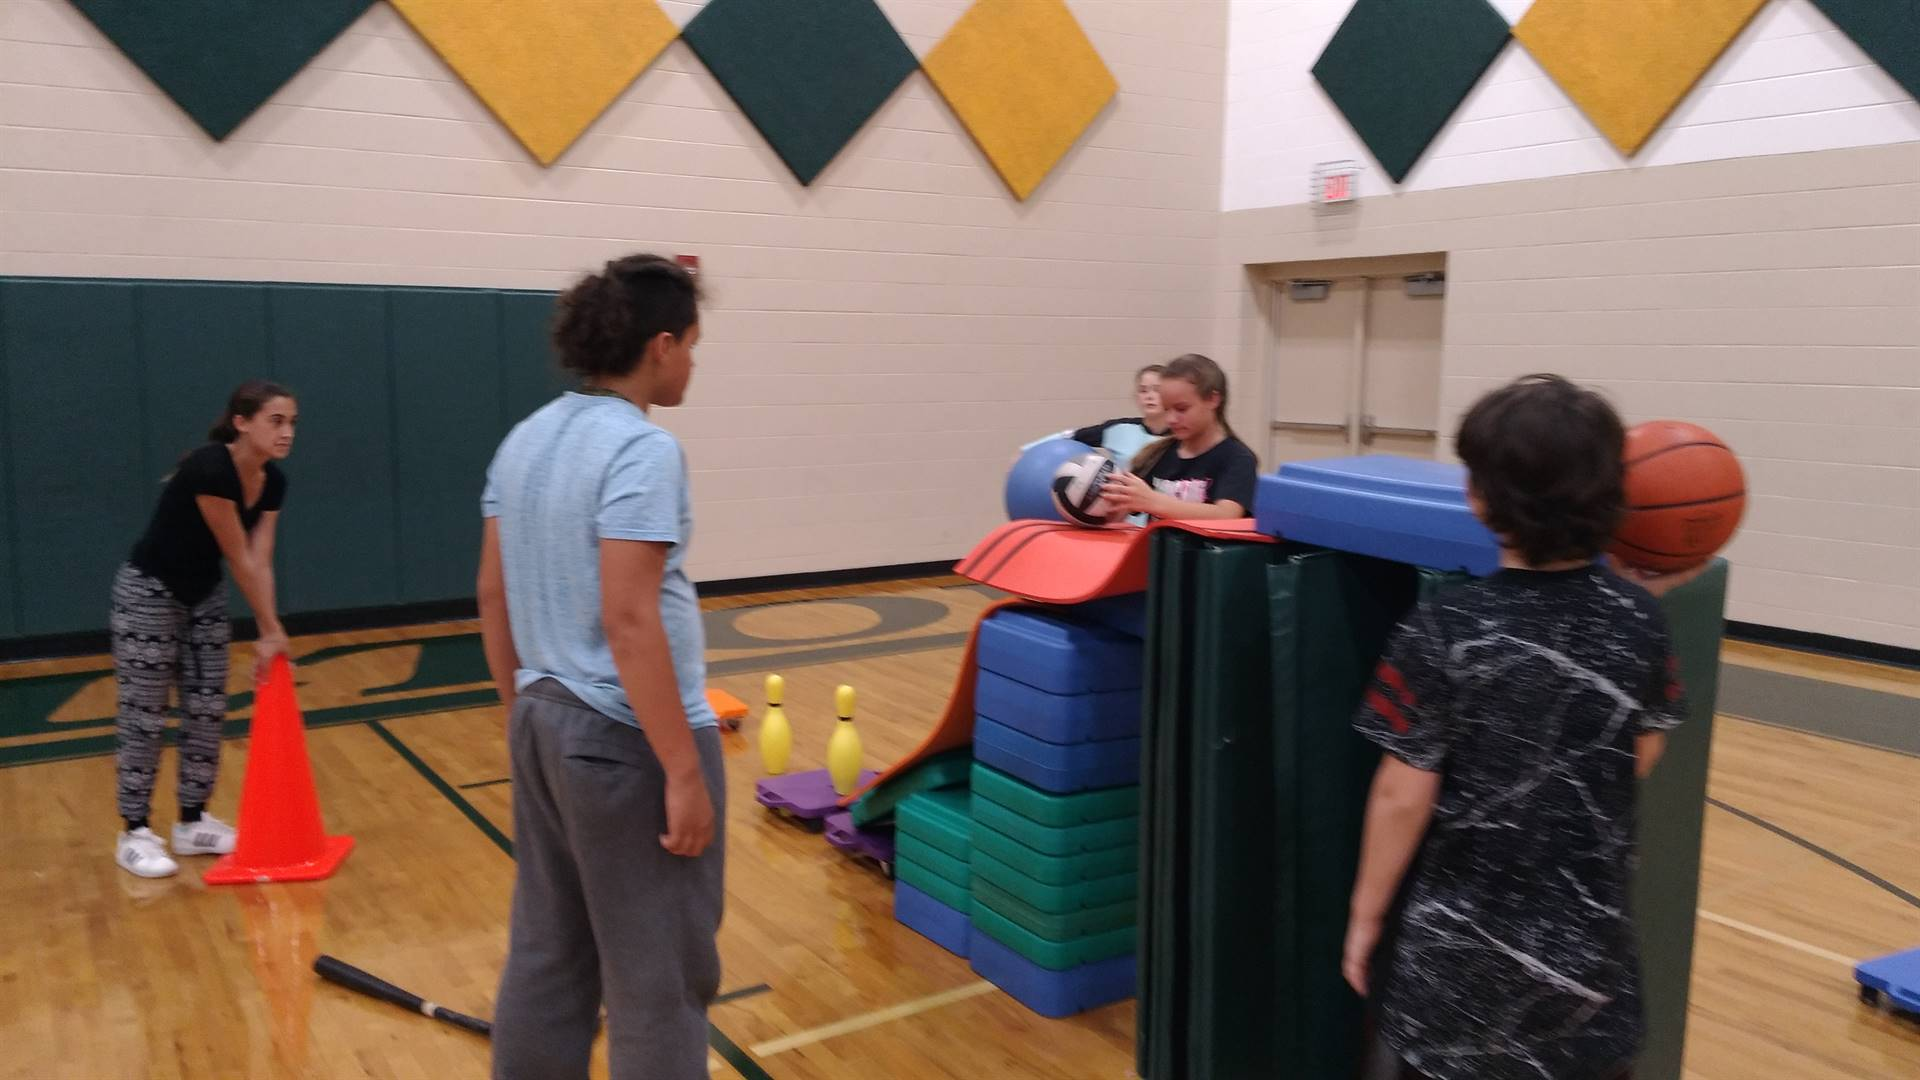 Knock down at least one bowling pin using six or more different types of equipment and by creating t